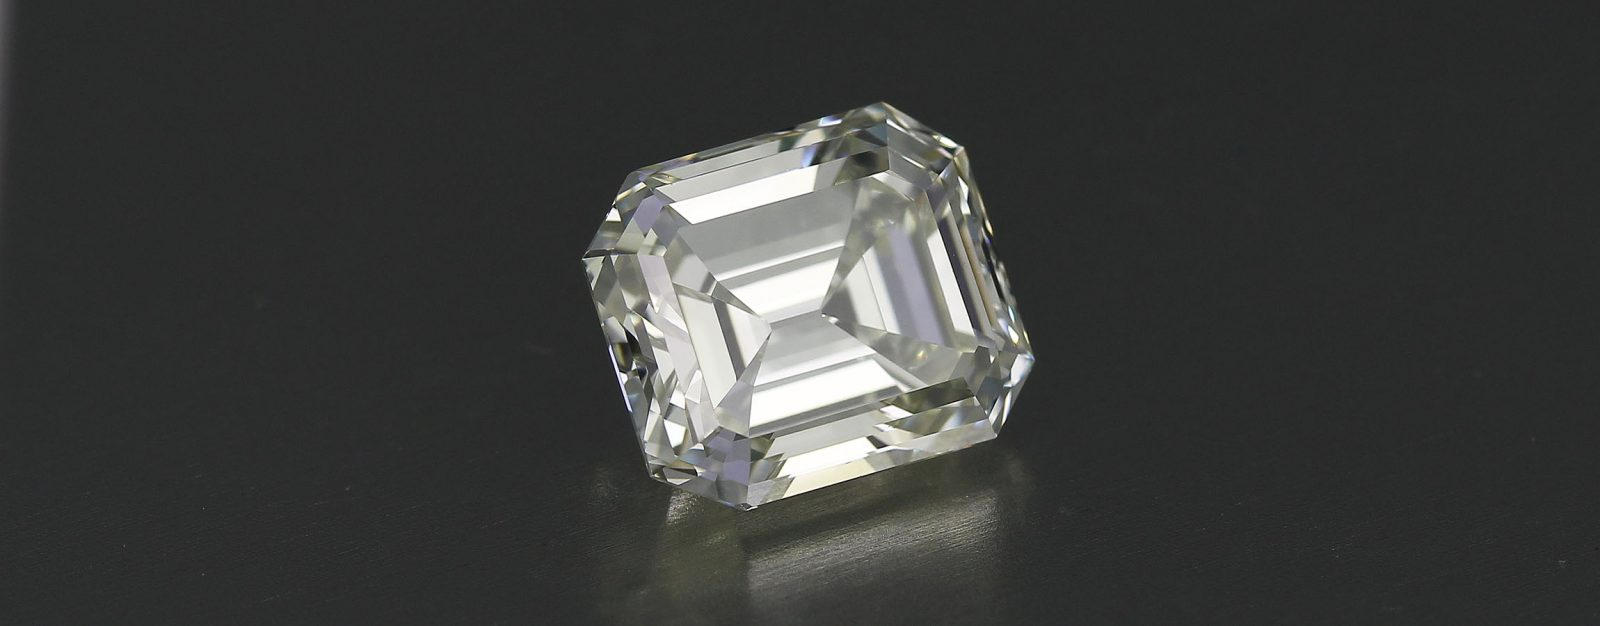 Vintage Emerald Cut Diamond circa 1910-1930 — 4.40 carat